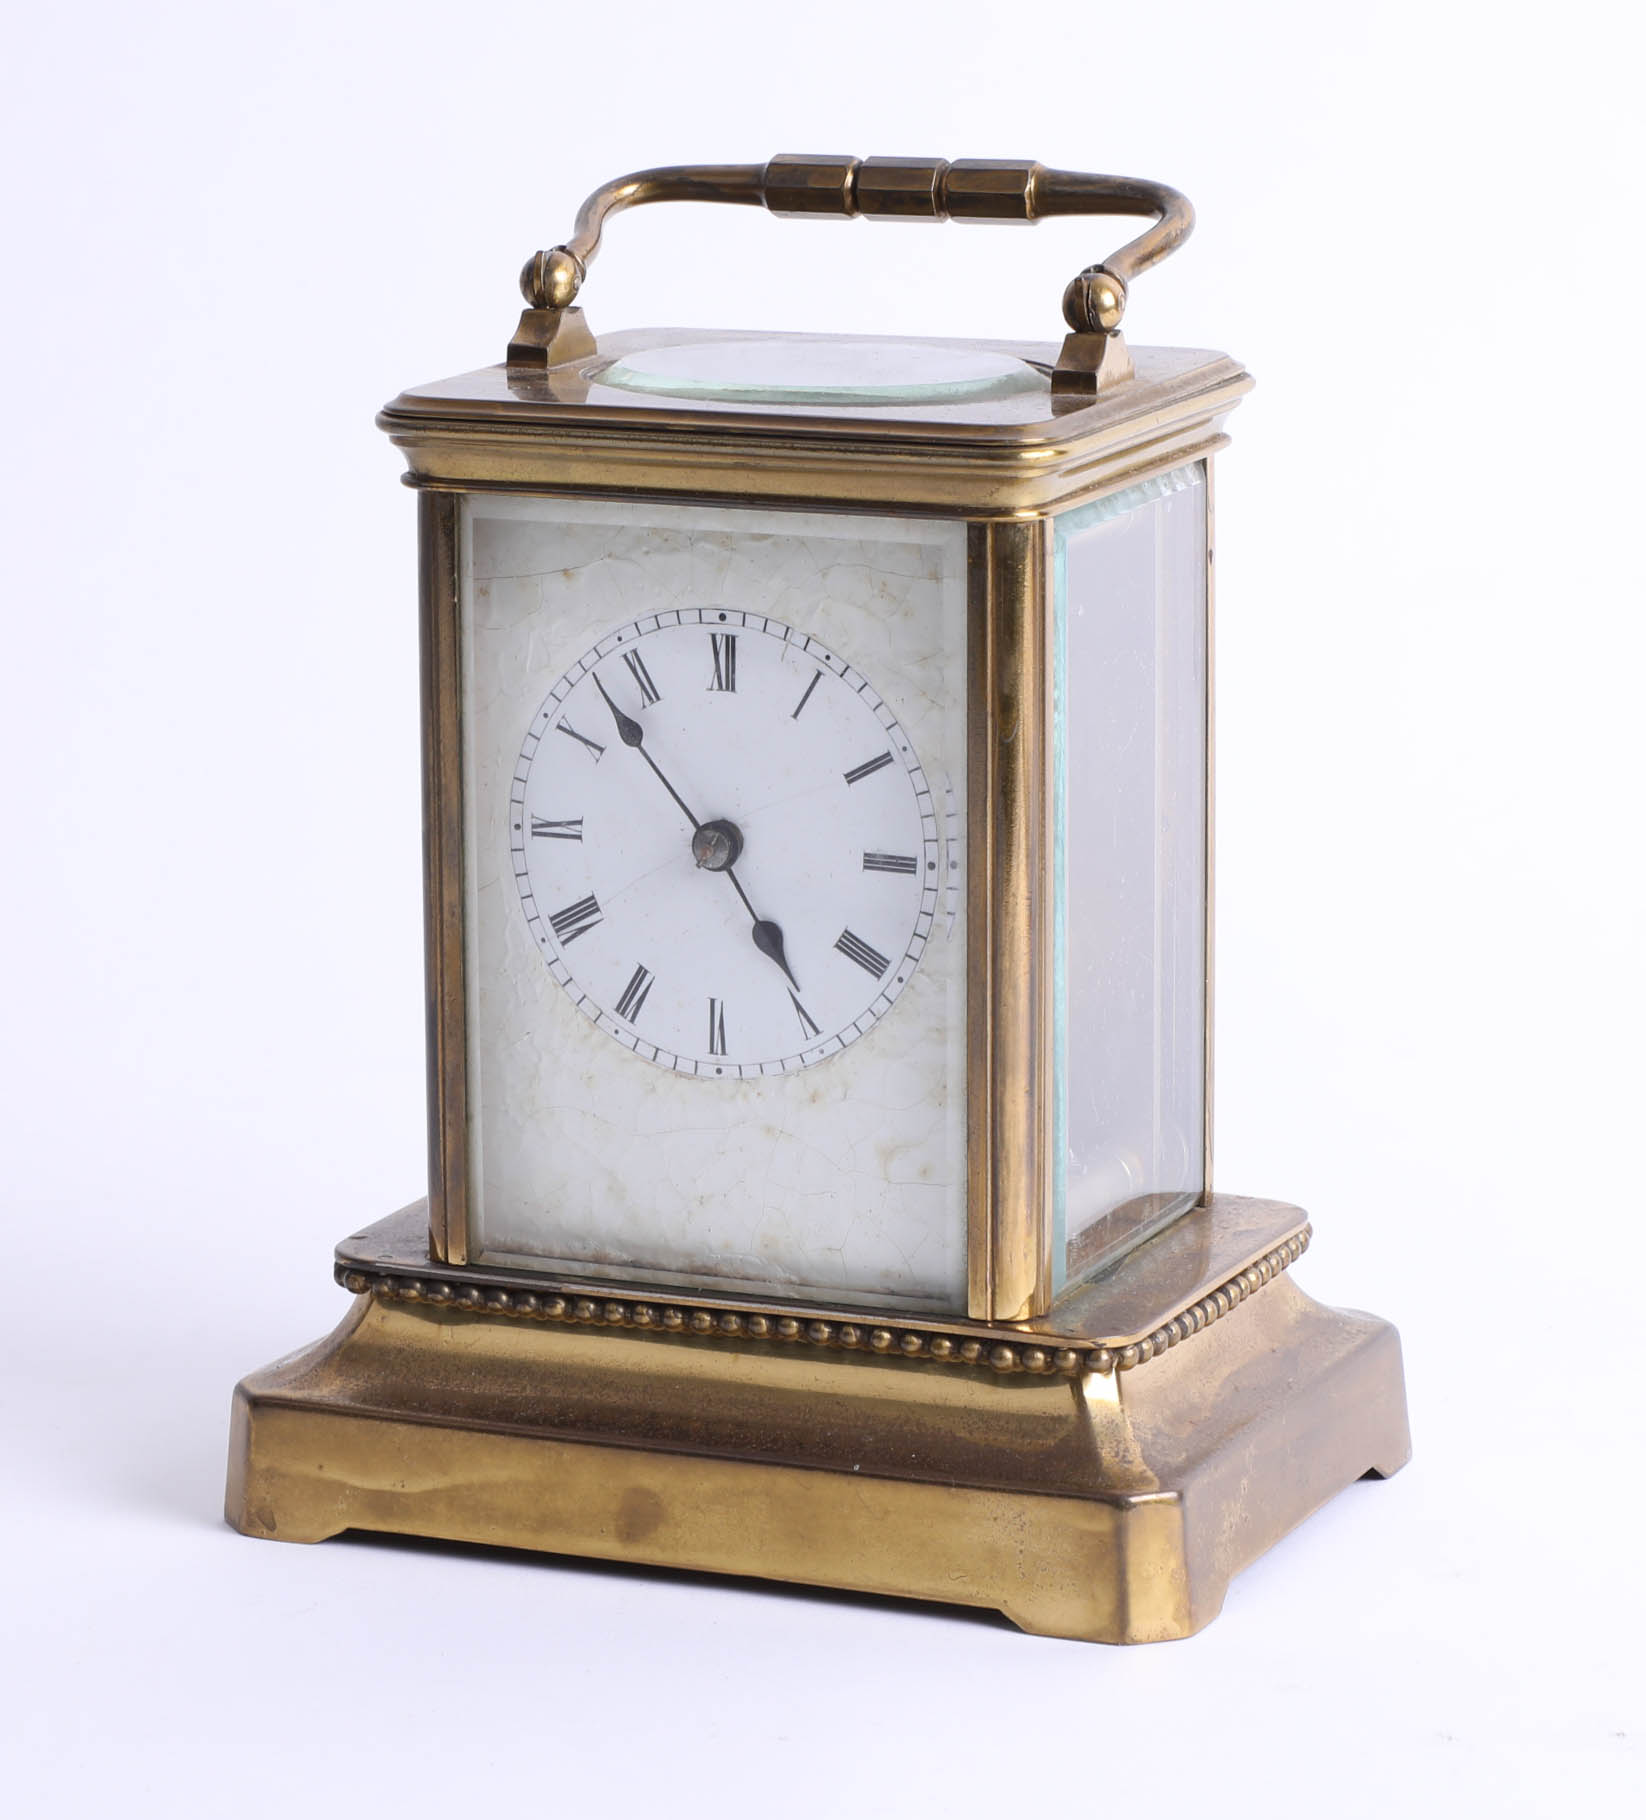 A brass carriage clock on base, maker unknown, height 15cm.